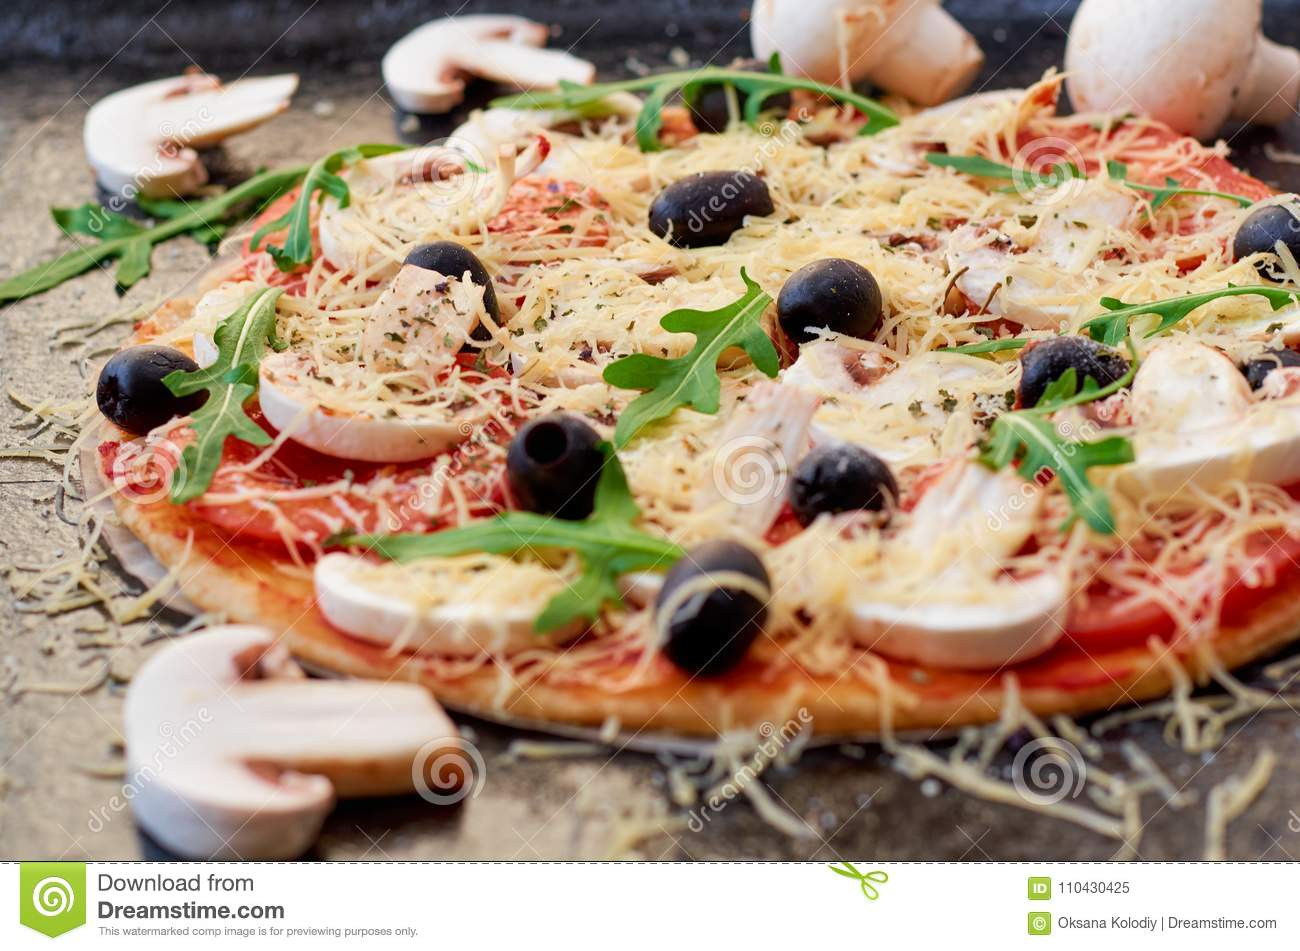 Raw pizza on the black background close up. Vegetarian pizza with cheese, vegetables, mushrooms, black olives and fresh rucola